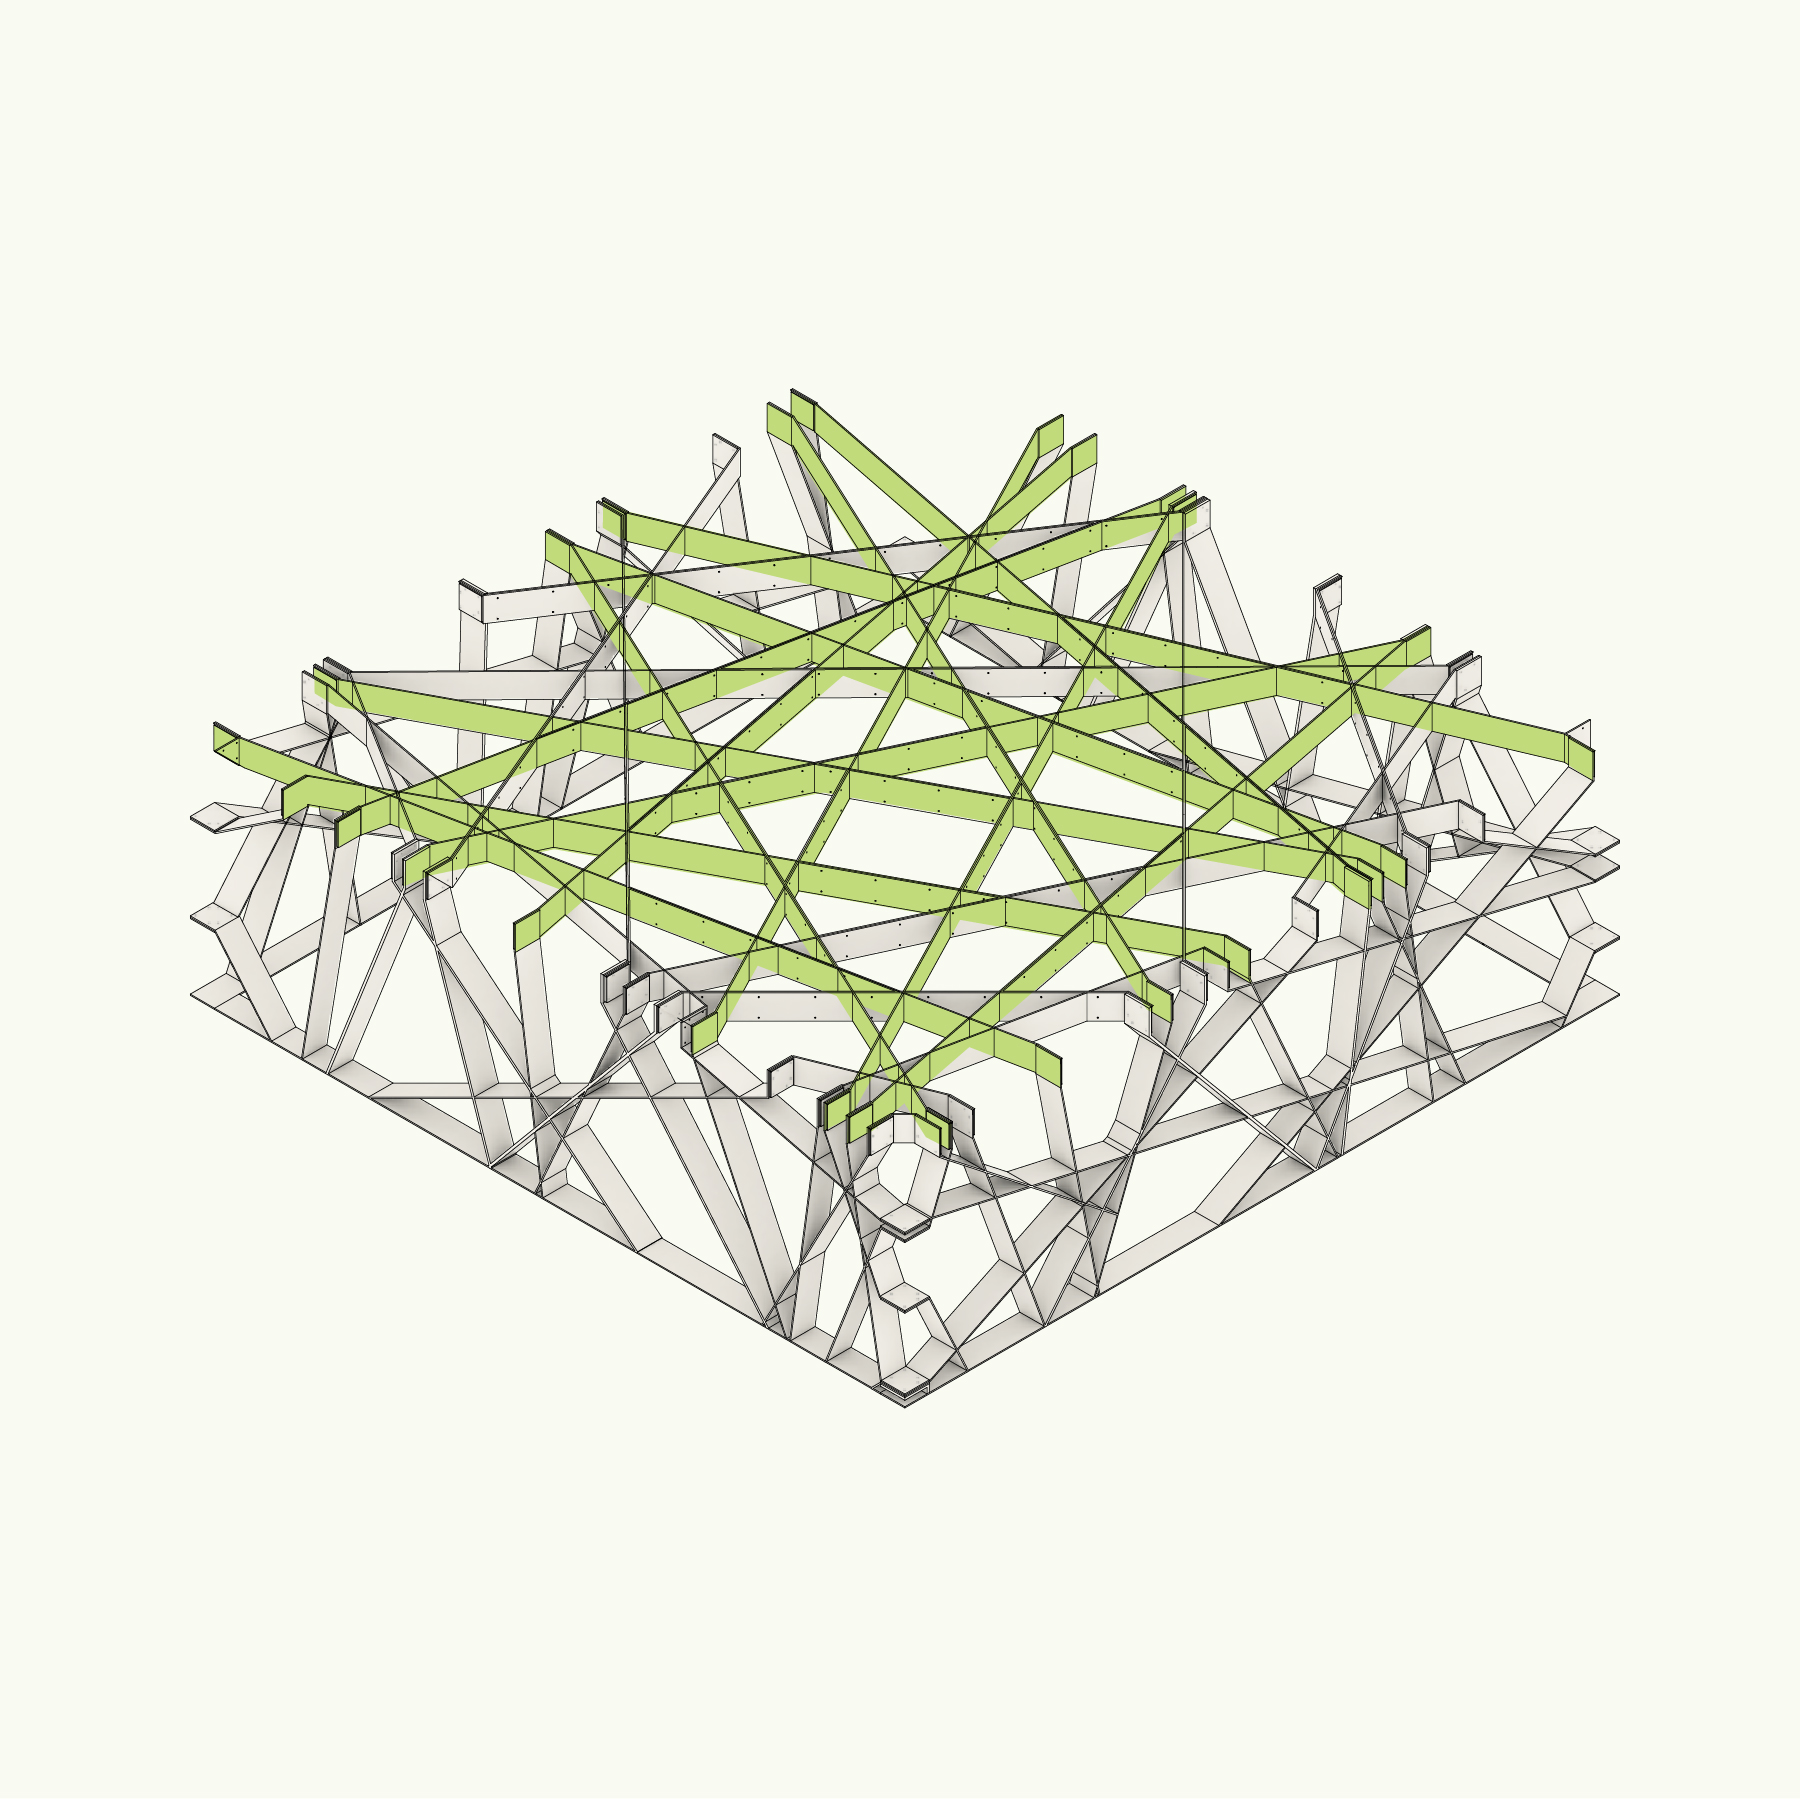 Structural Analysis: Toyo Ito's Serpentine Pavilion